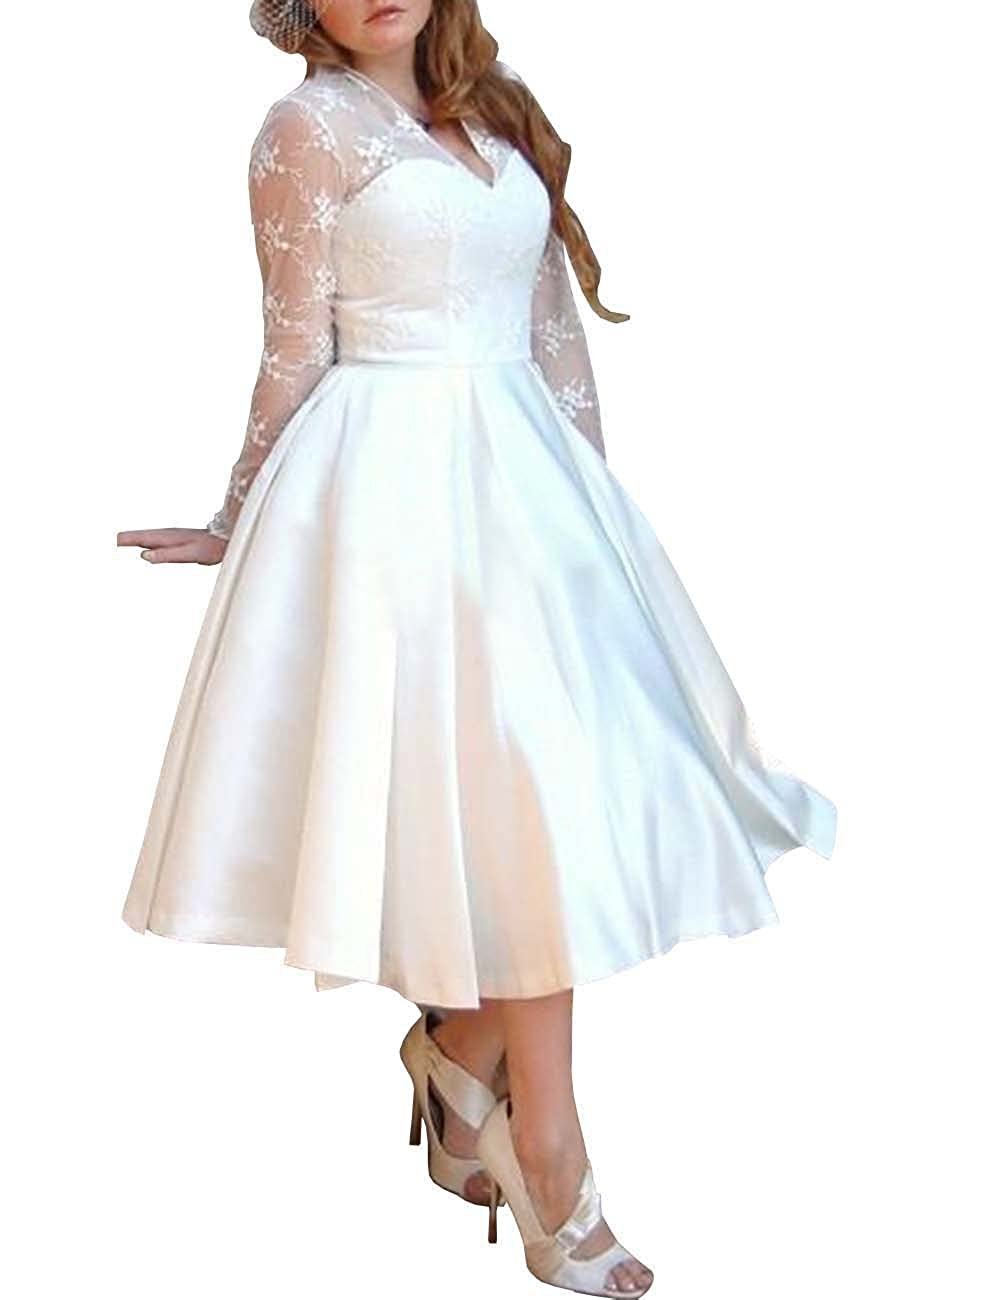 b9a99c4aeb82 Mulanbridal Women's V Neck Long Sleeves Tea Length Short Wedding Dress Satin  Plus Size Bridal Gowns at Amazon Women's Clothing store: